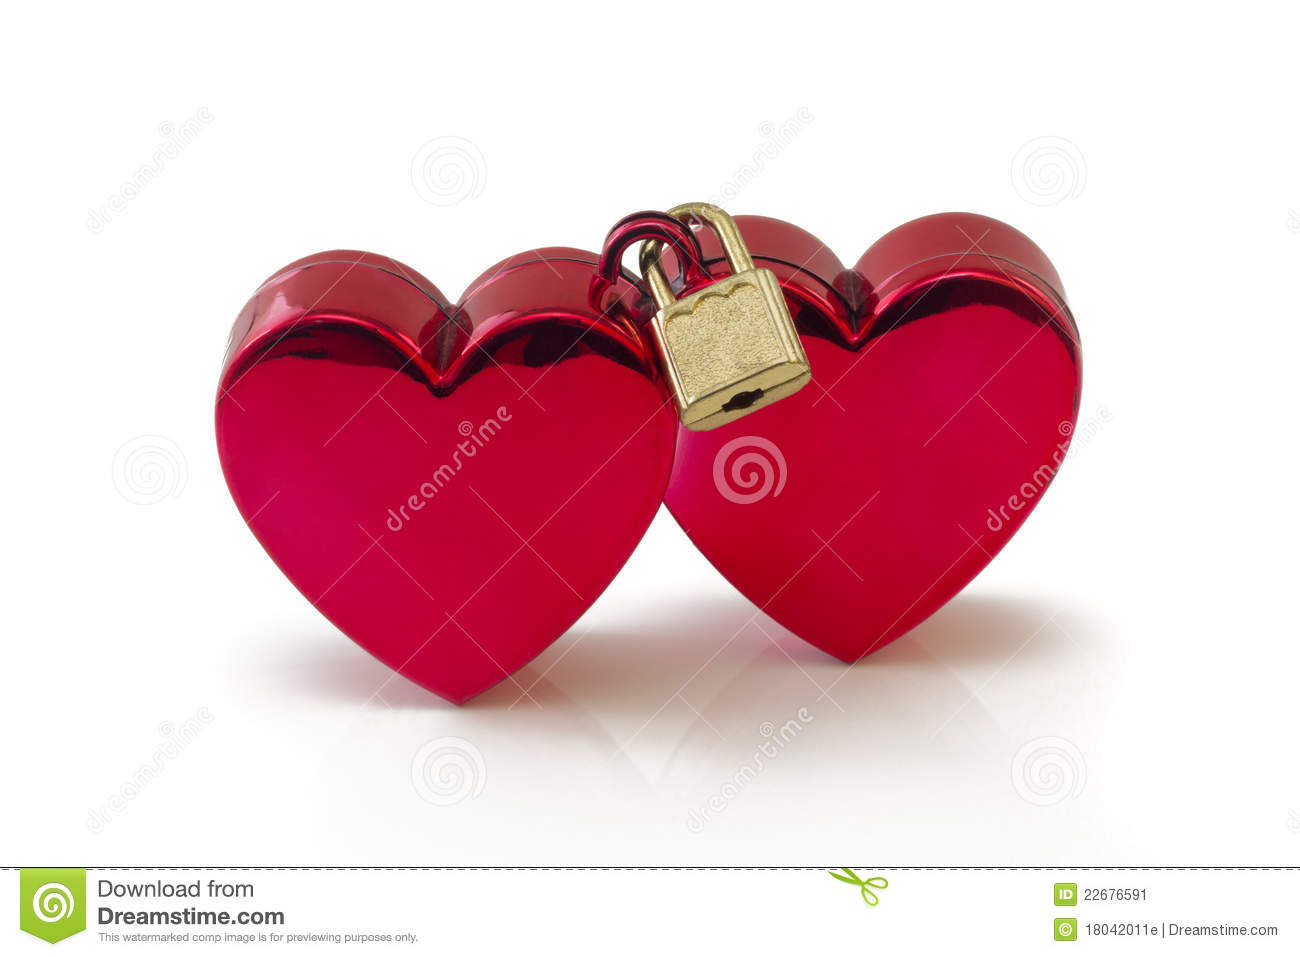 wedlocked two hearts locked on white stock image image of metal